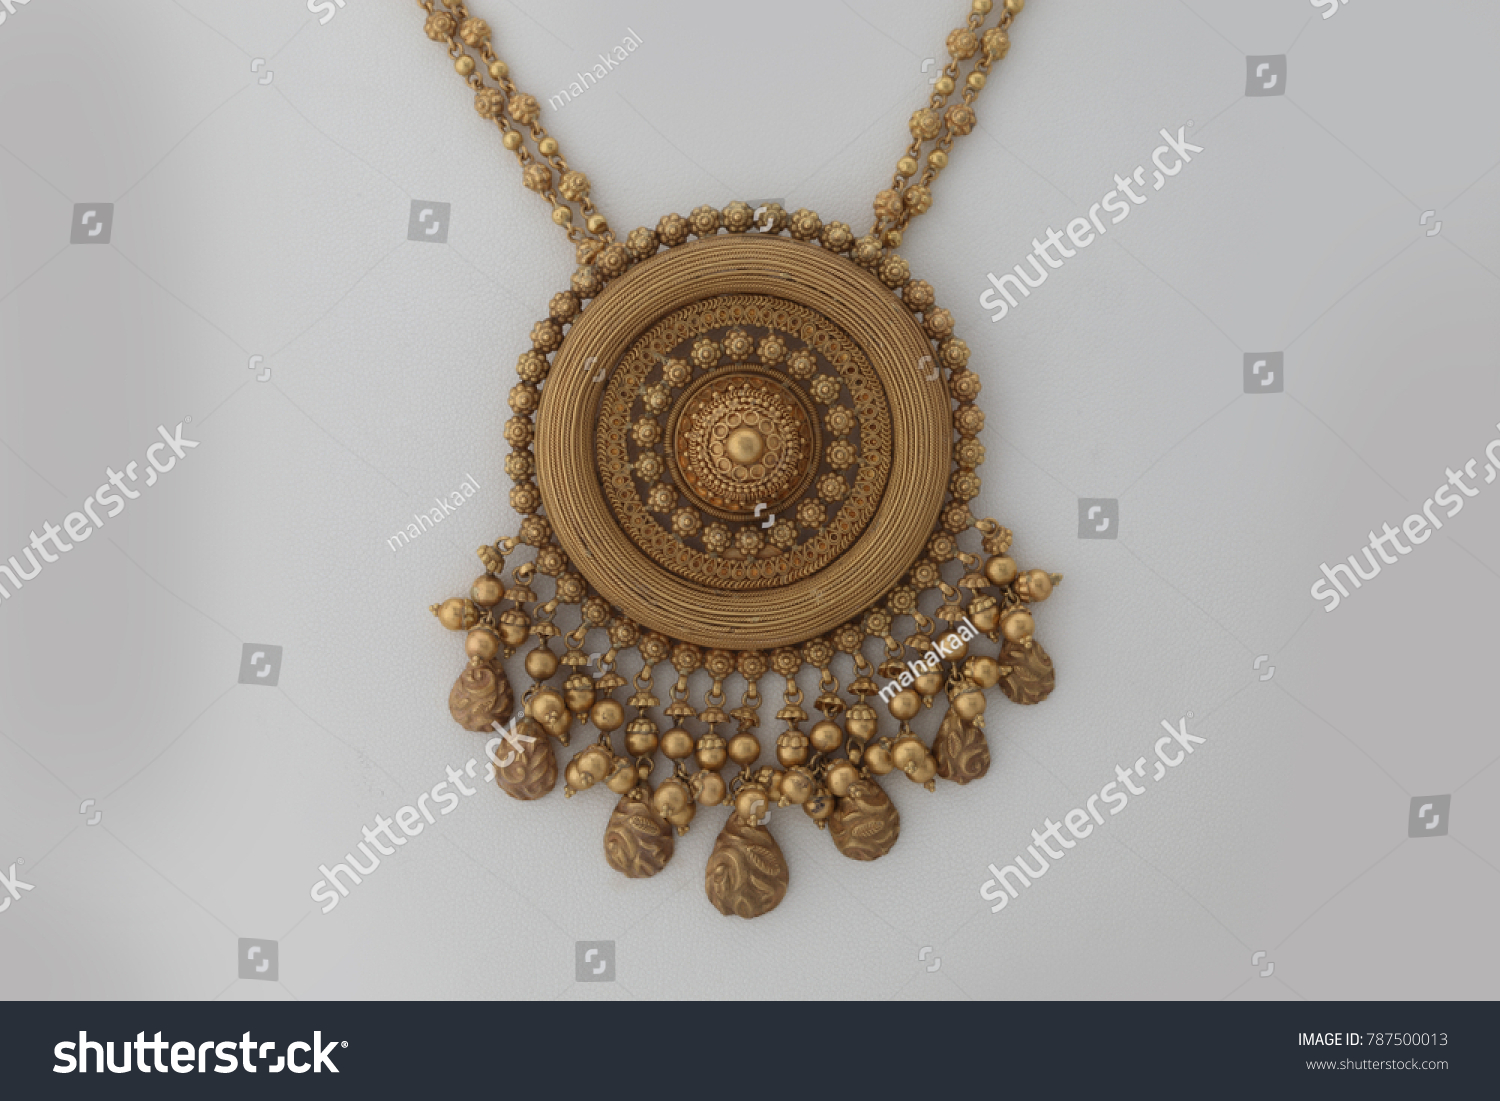 necklace buddhist india item with gold hinduism om yoga aum from chain jewelry silver indian color anniyo women necklaces ohm pendant in hindu outdoor sport